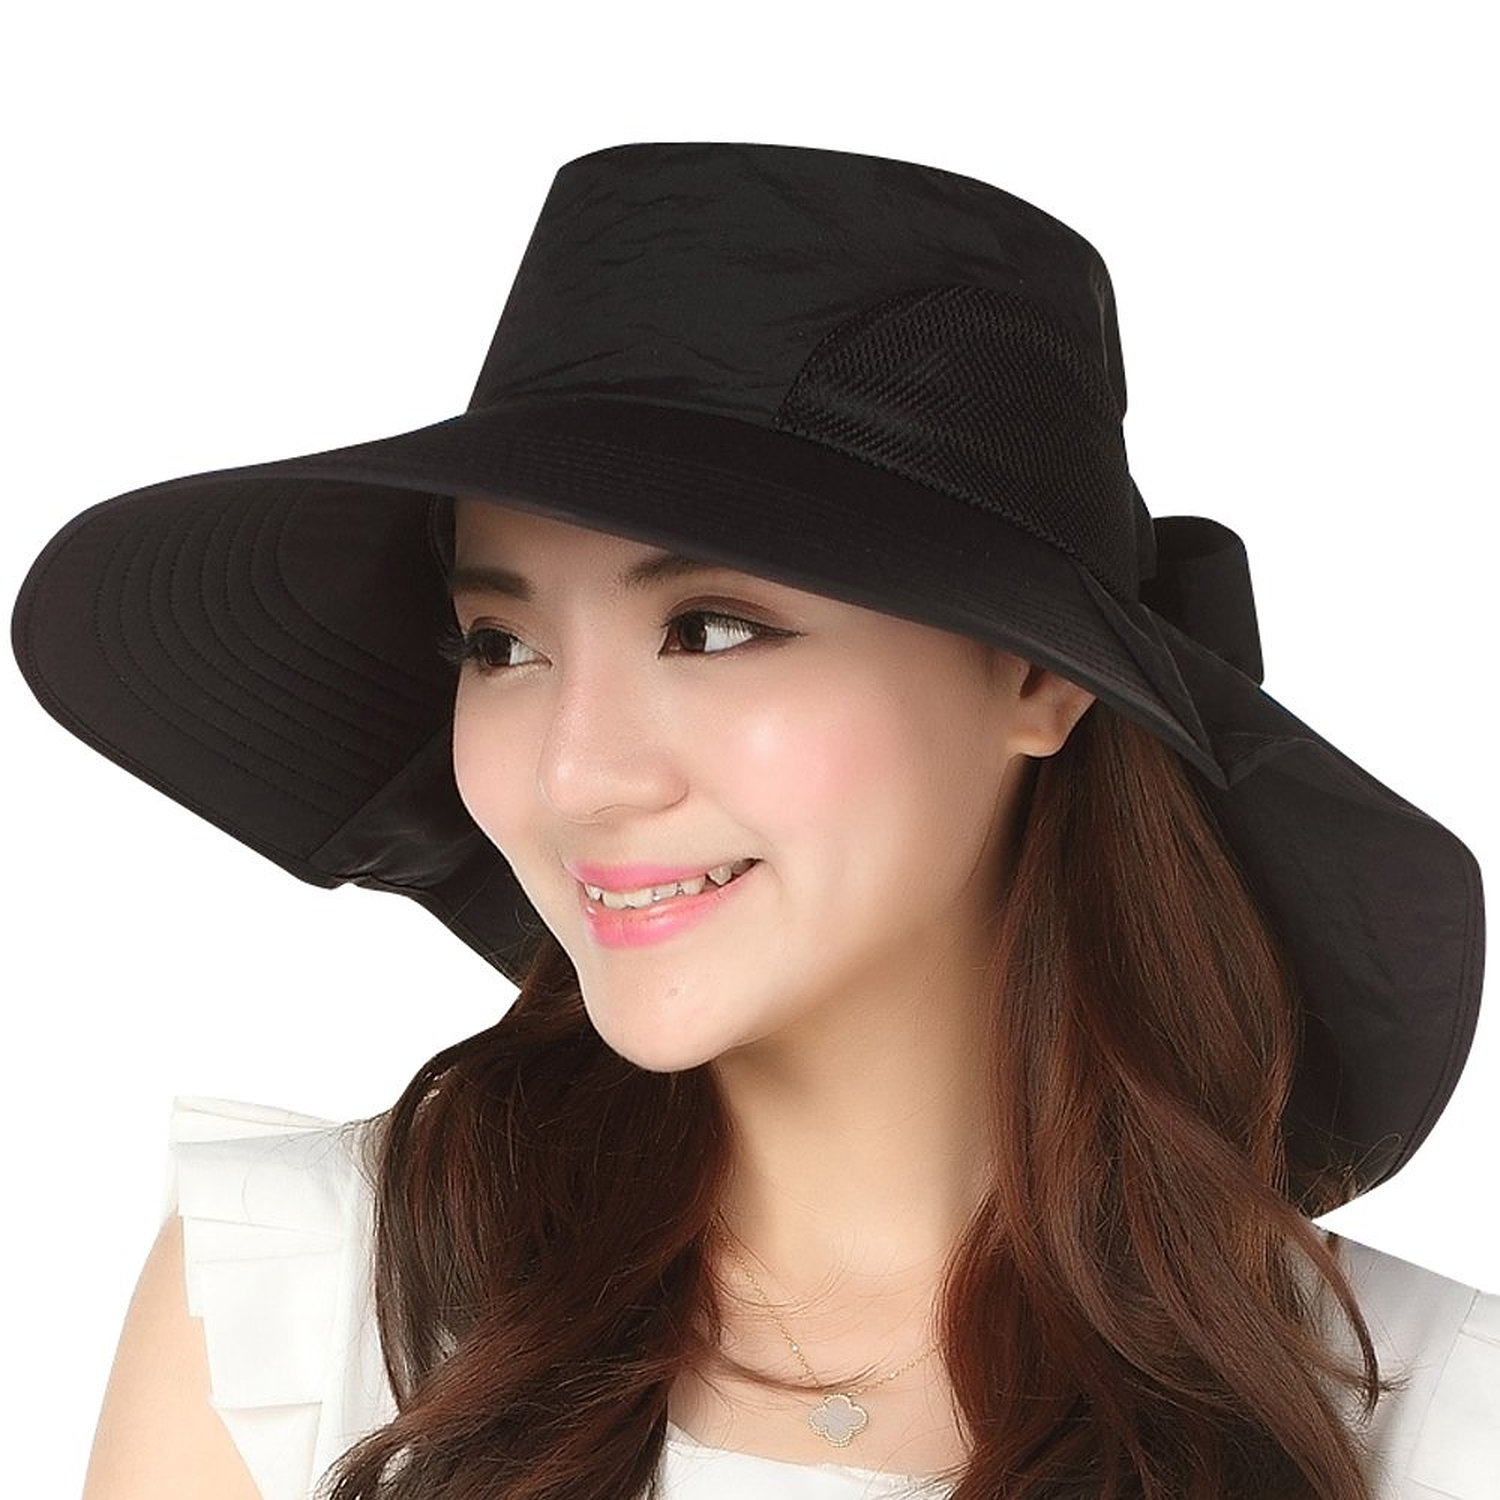 Jemis Women's Big Brim Summer Hat with Neck Cover